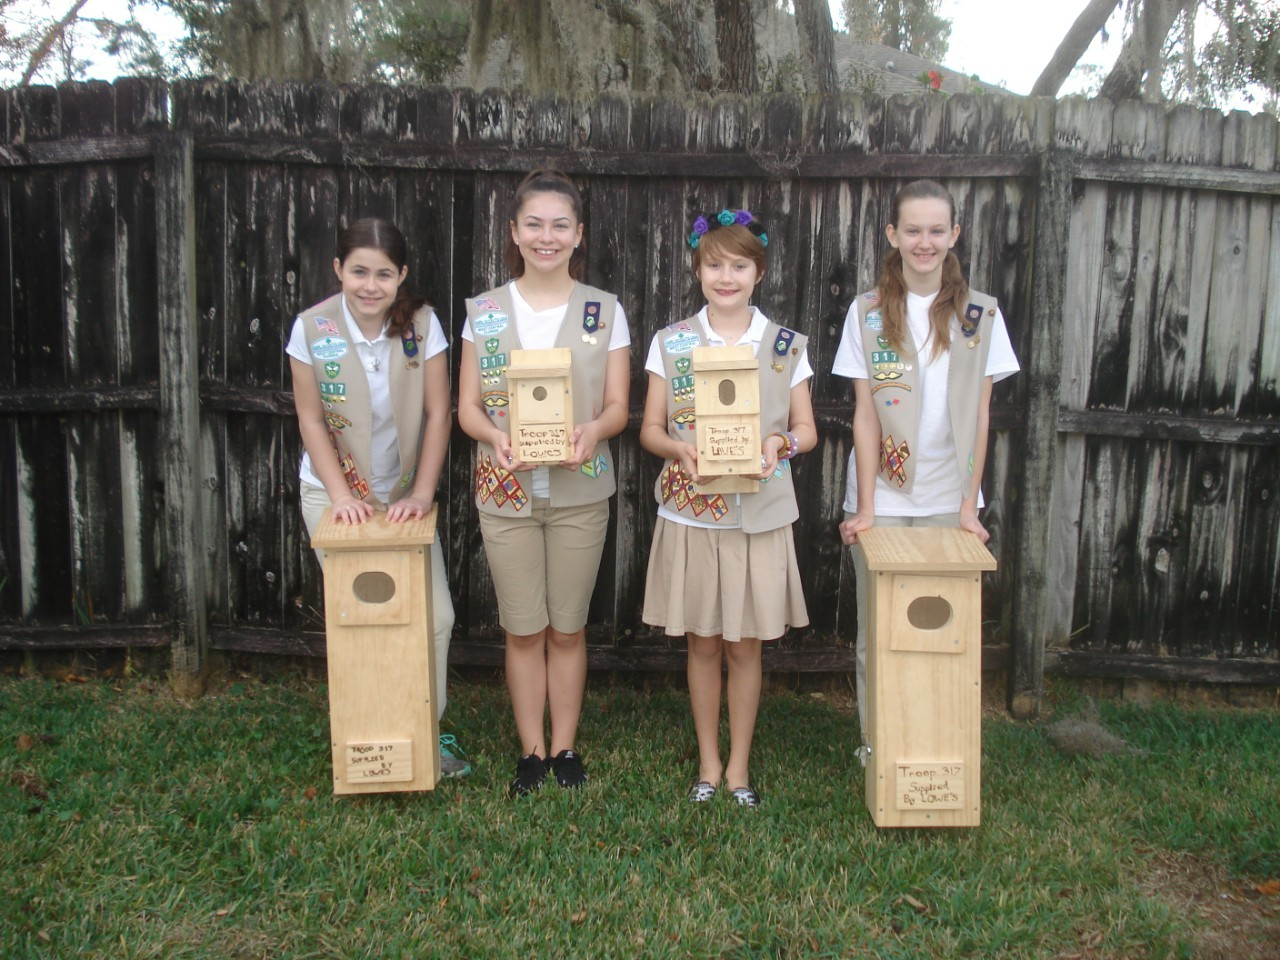 Troop 317 Earns The Girl Scout Silver Award